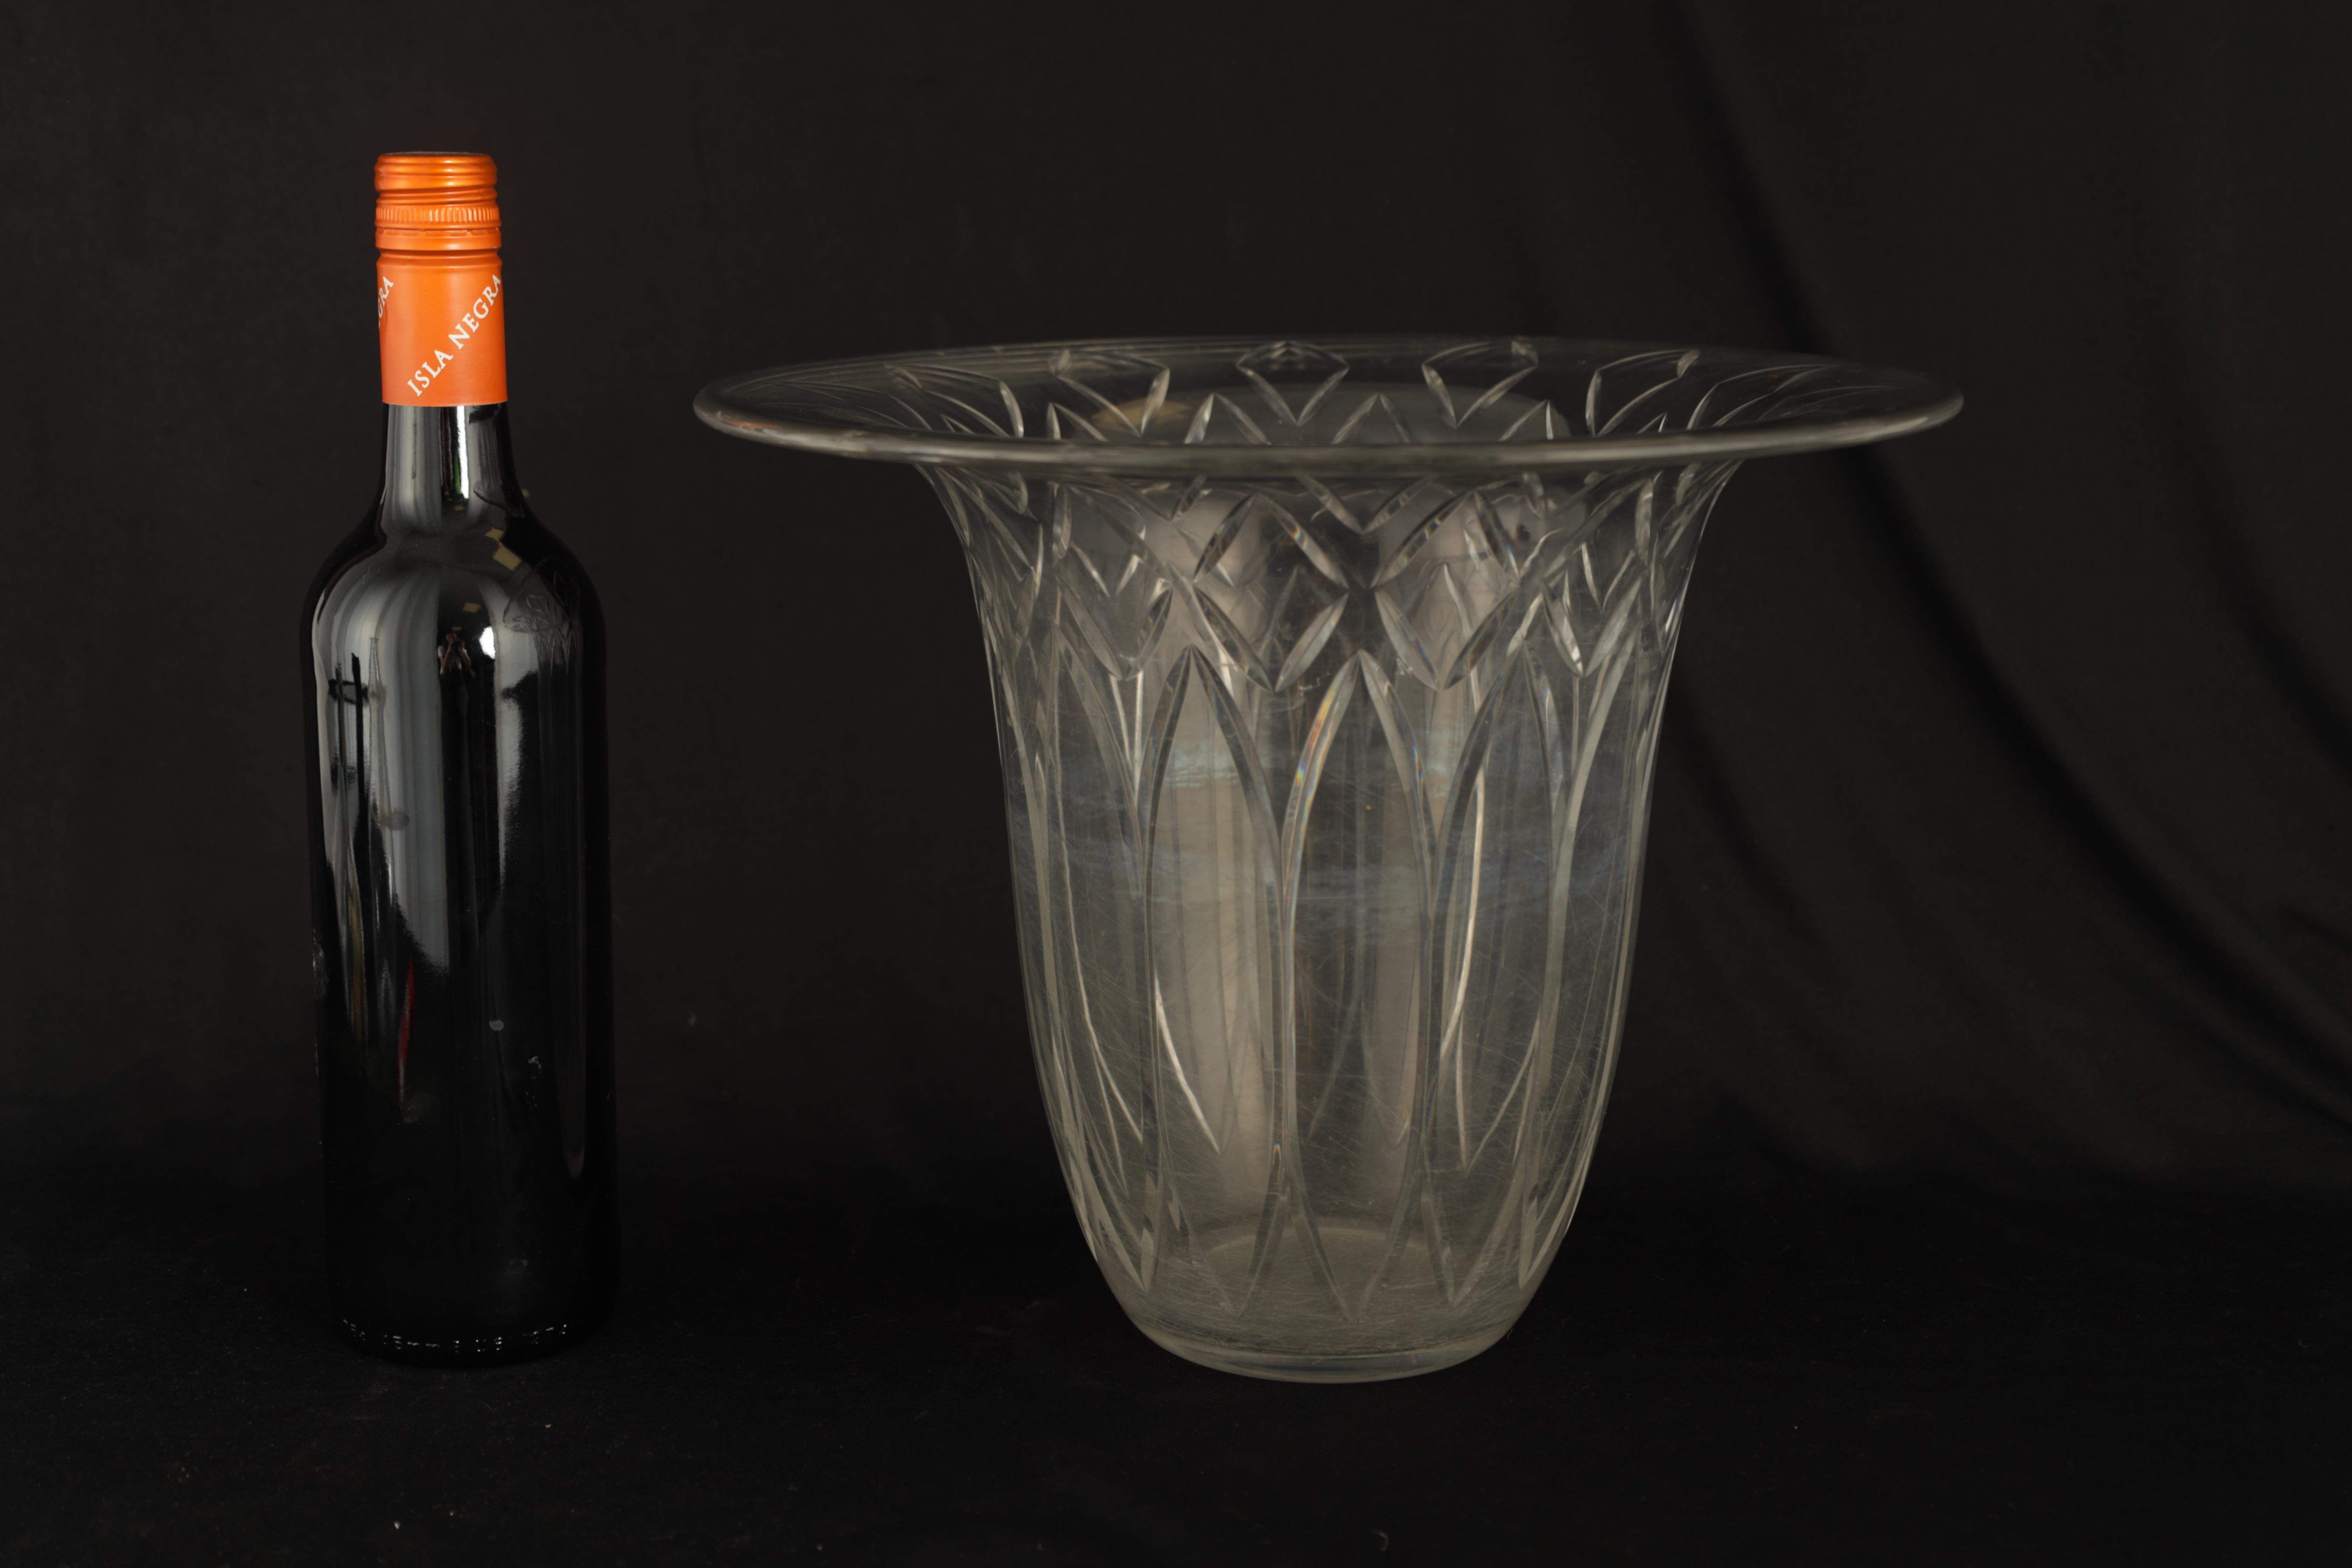 AN EARLY 20TH CENTURY BACCARAT CLEAR GLASS VASE having flared rim and wheel cut petal and diamond - Image 6 of 6